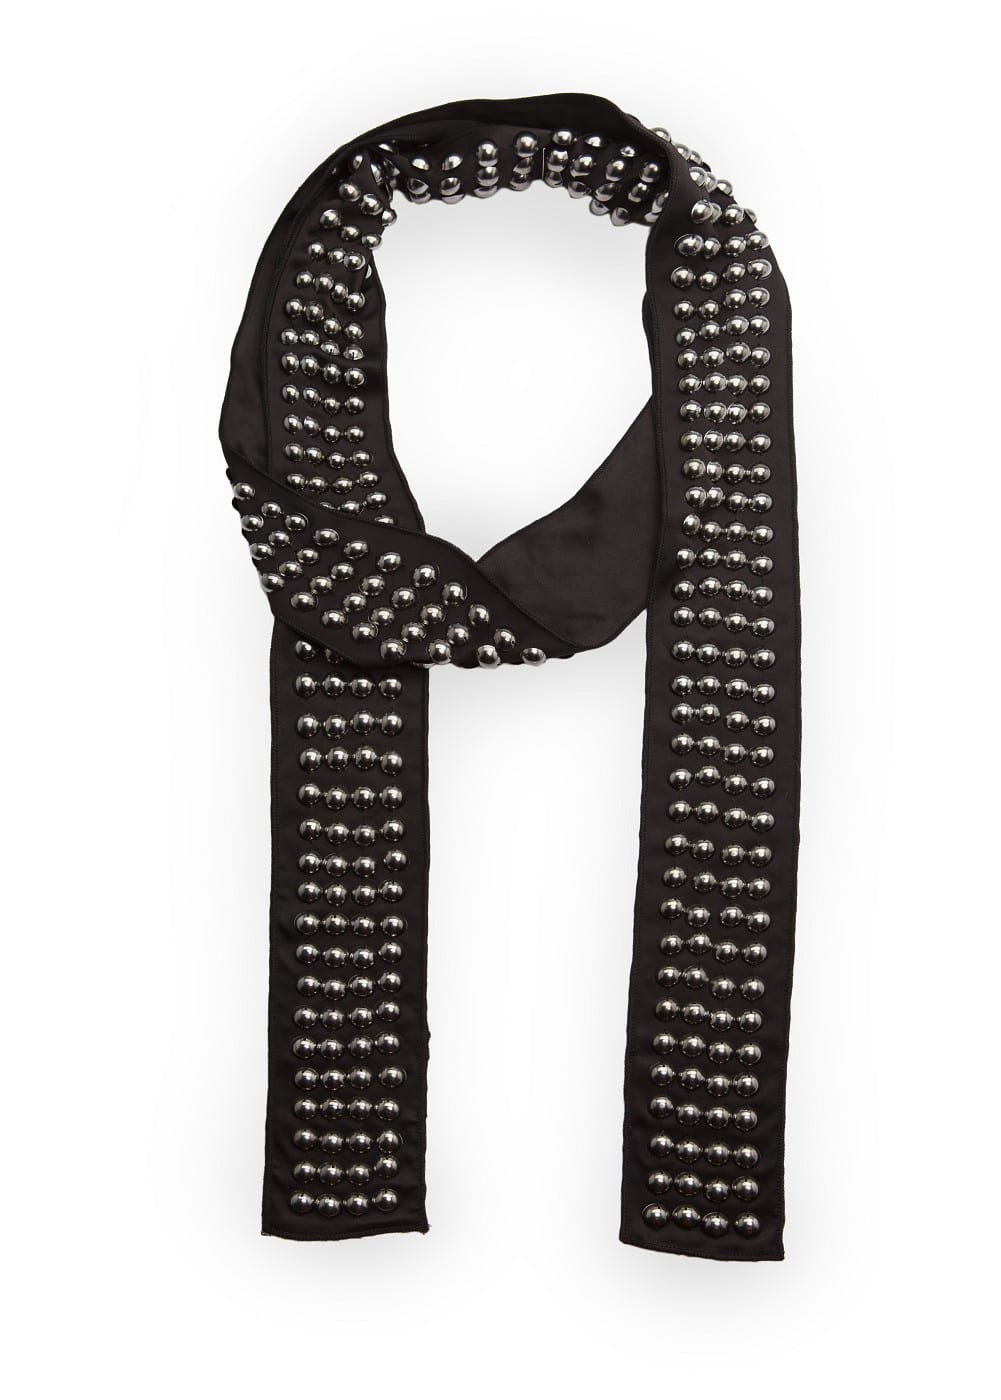 Satin finish studded foulard